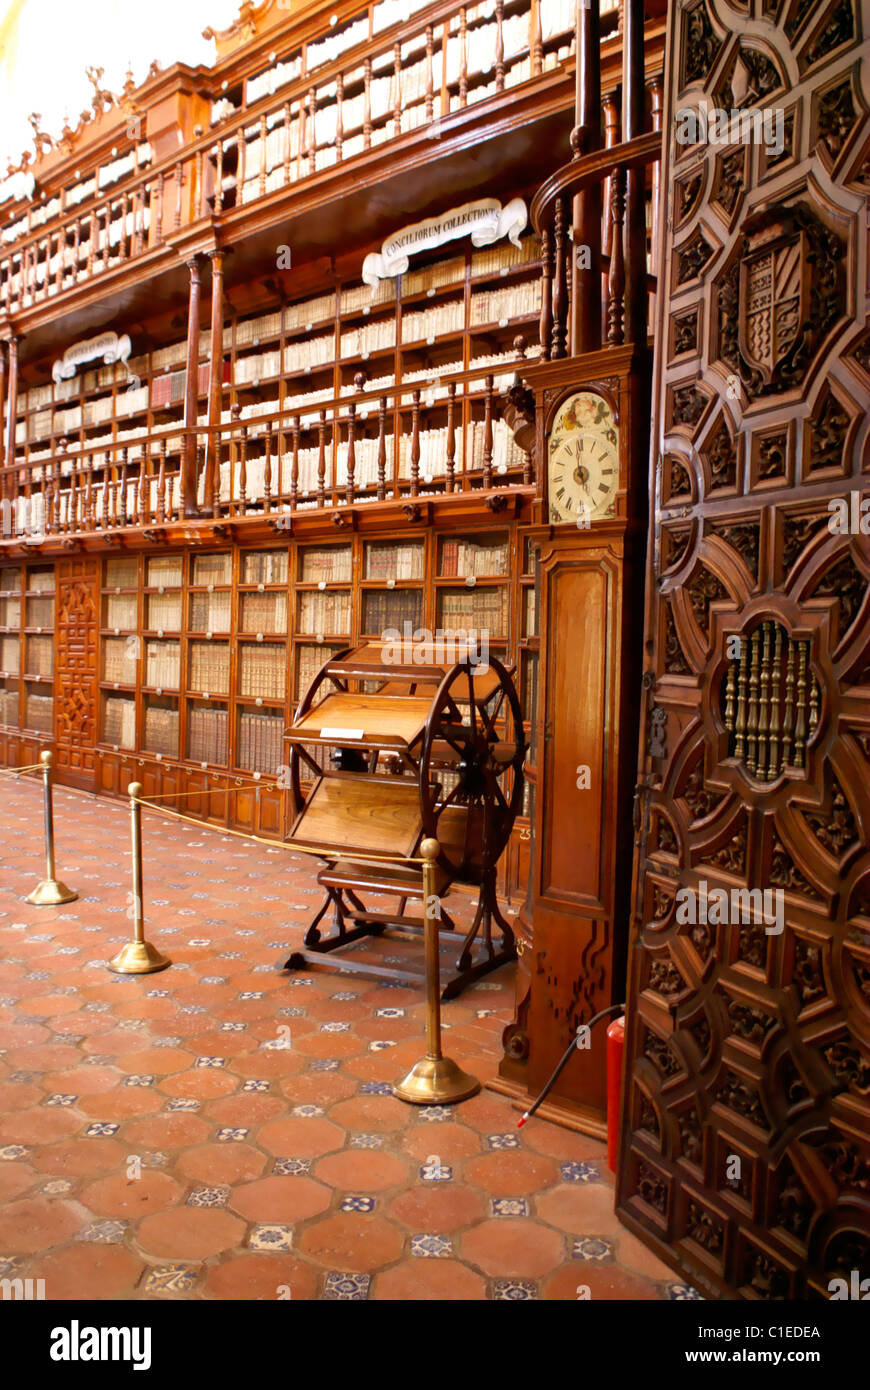 Multiple book reader or lectern and shelving, Biblioteca Palafoxiana library in the city of Puebla, Mexico - Stock Image